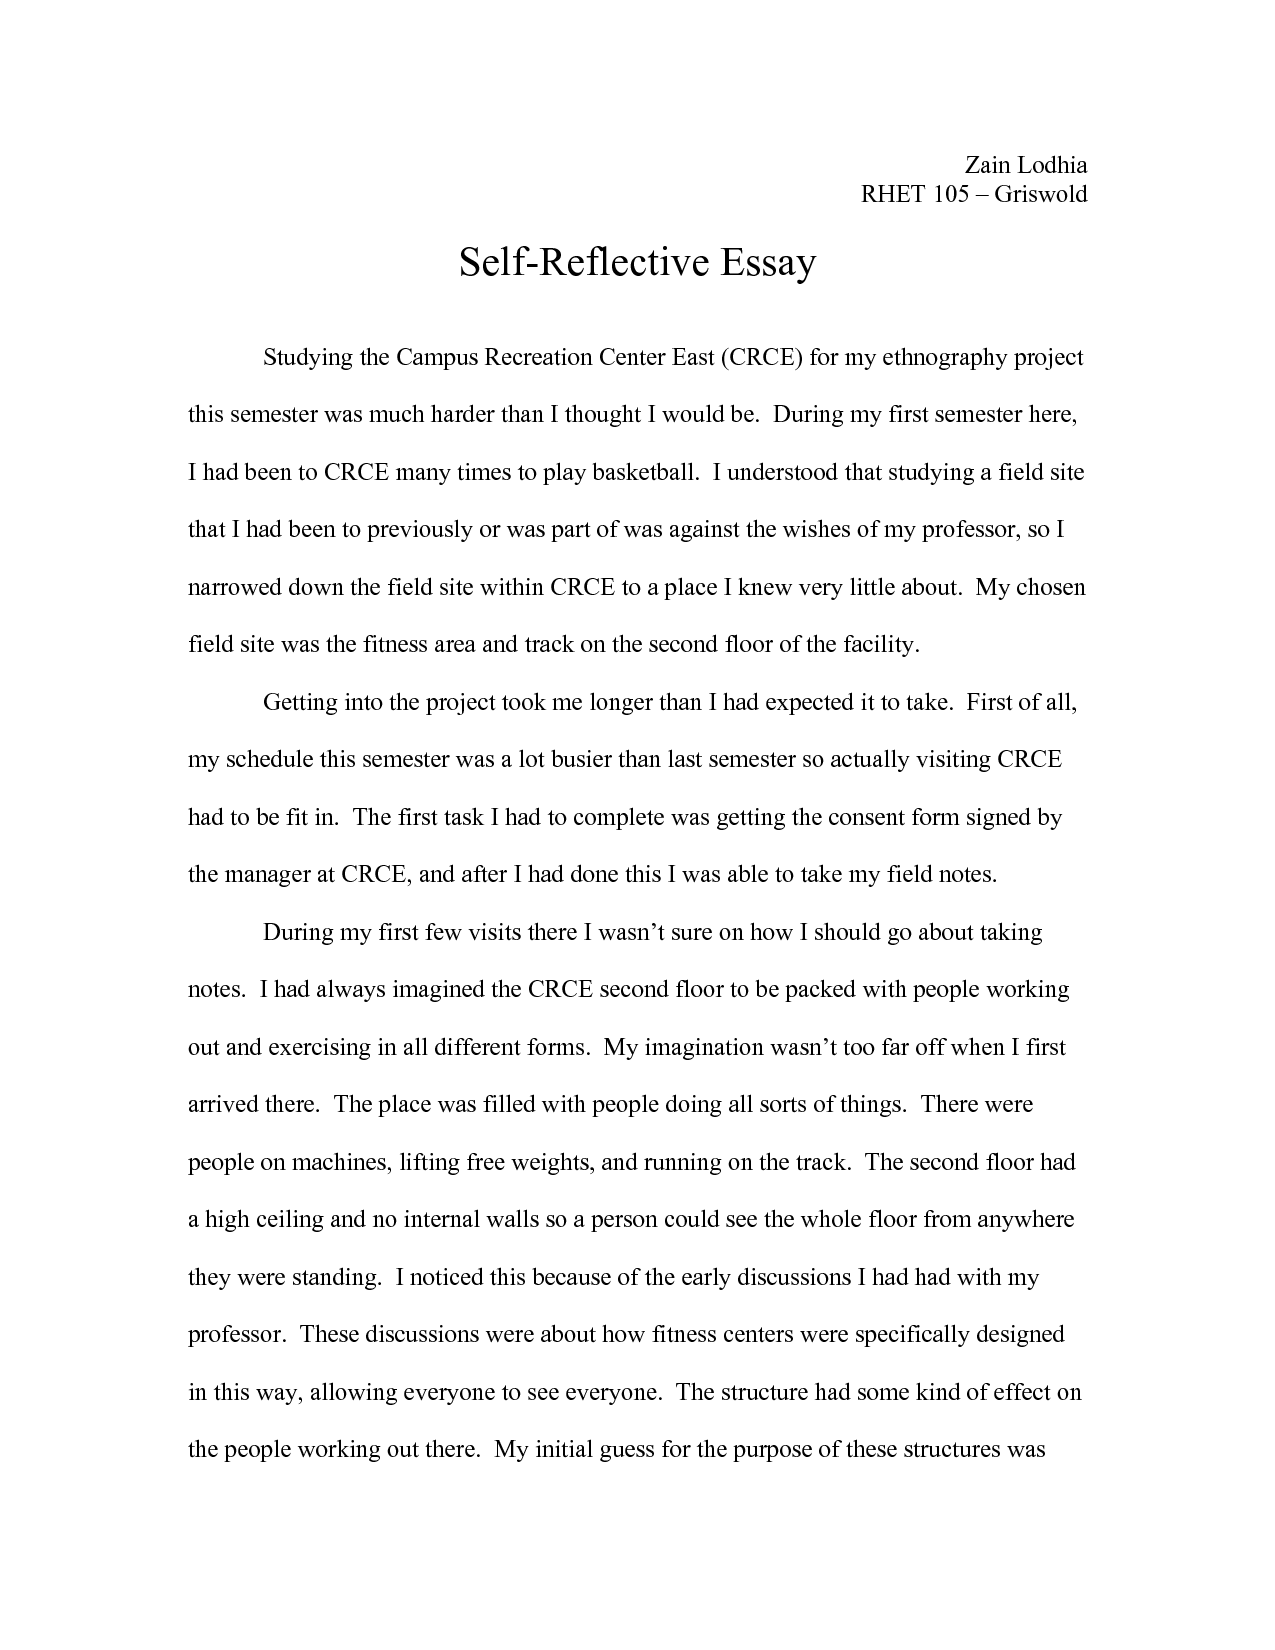 003 Qal0pwnf46 Reflective Essays Beautiful Essay Examples Sample Pdf About Writing English 101 Full